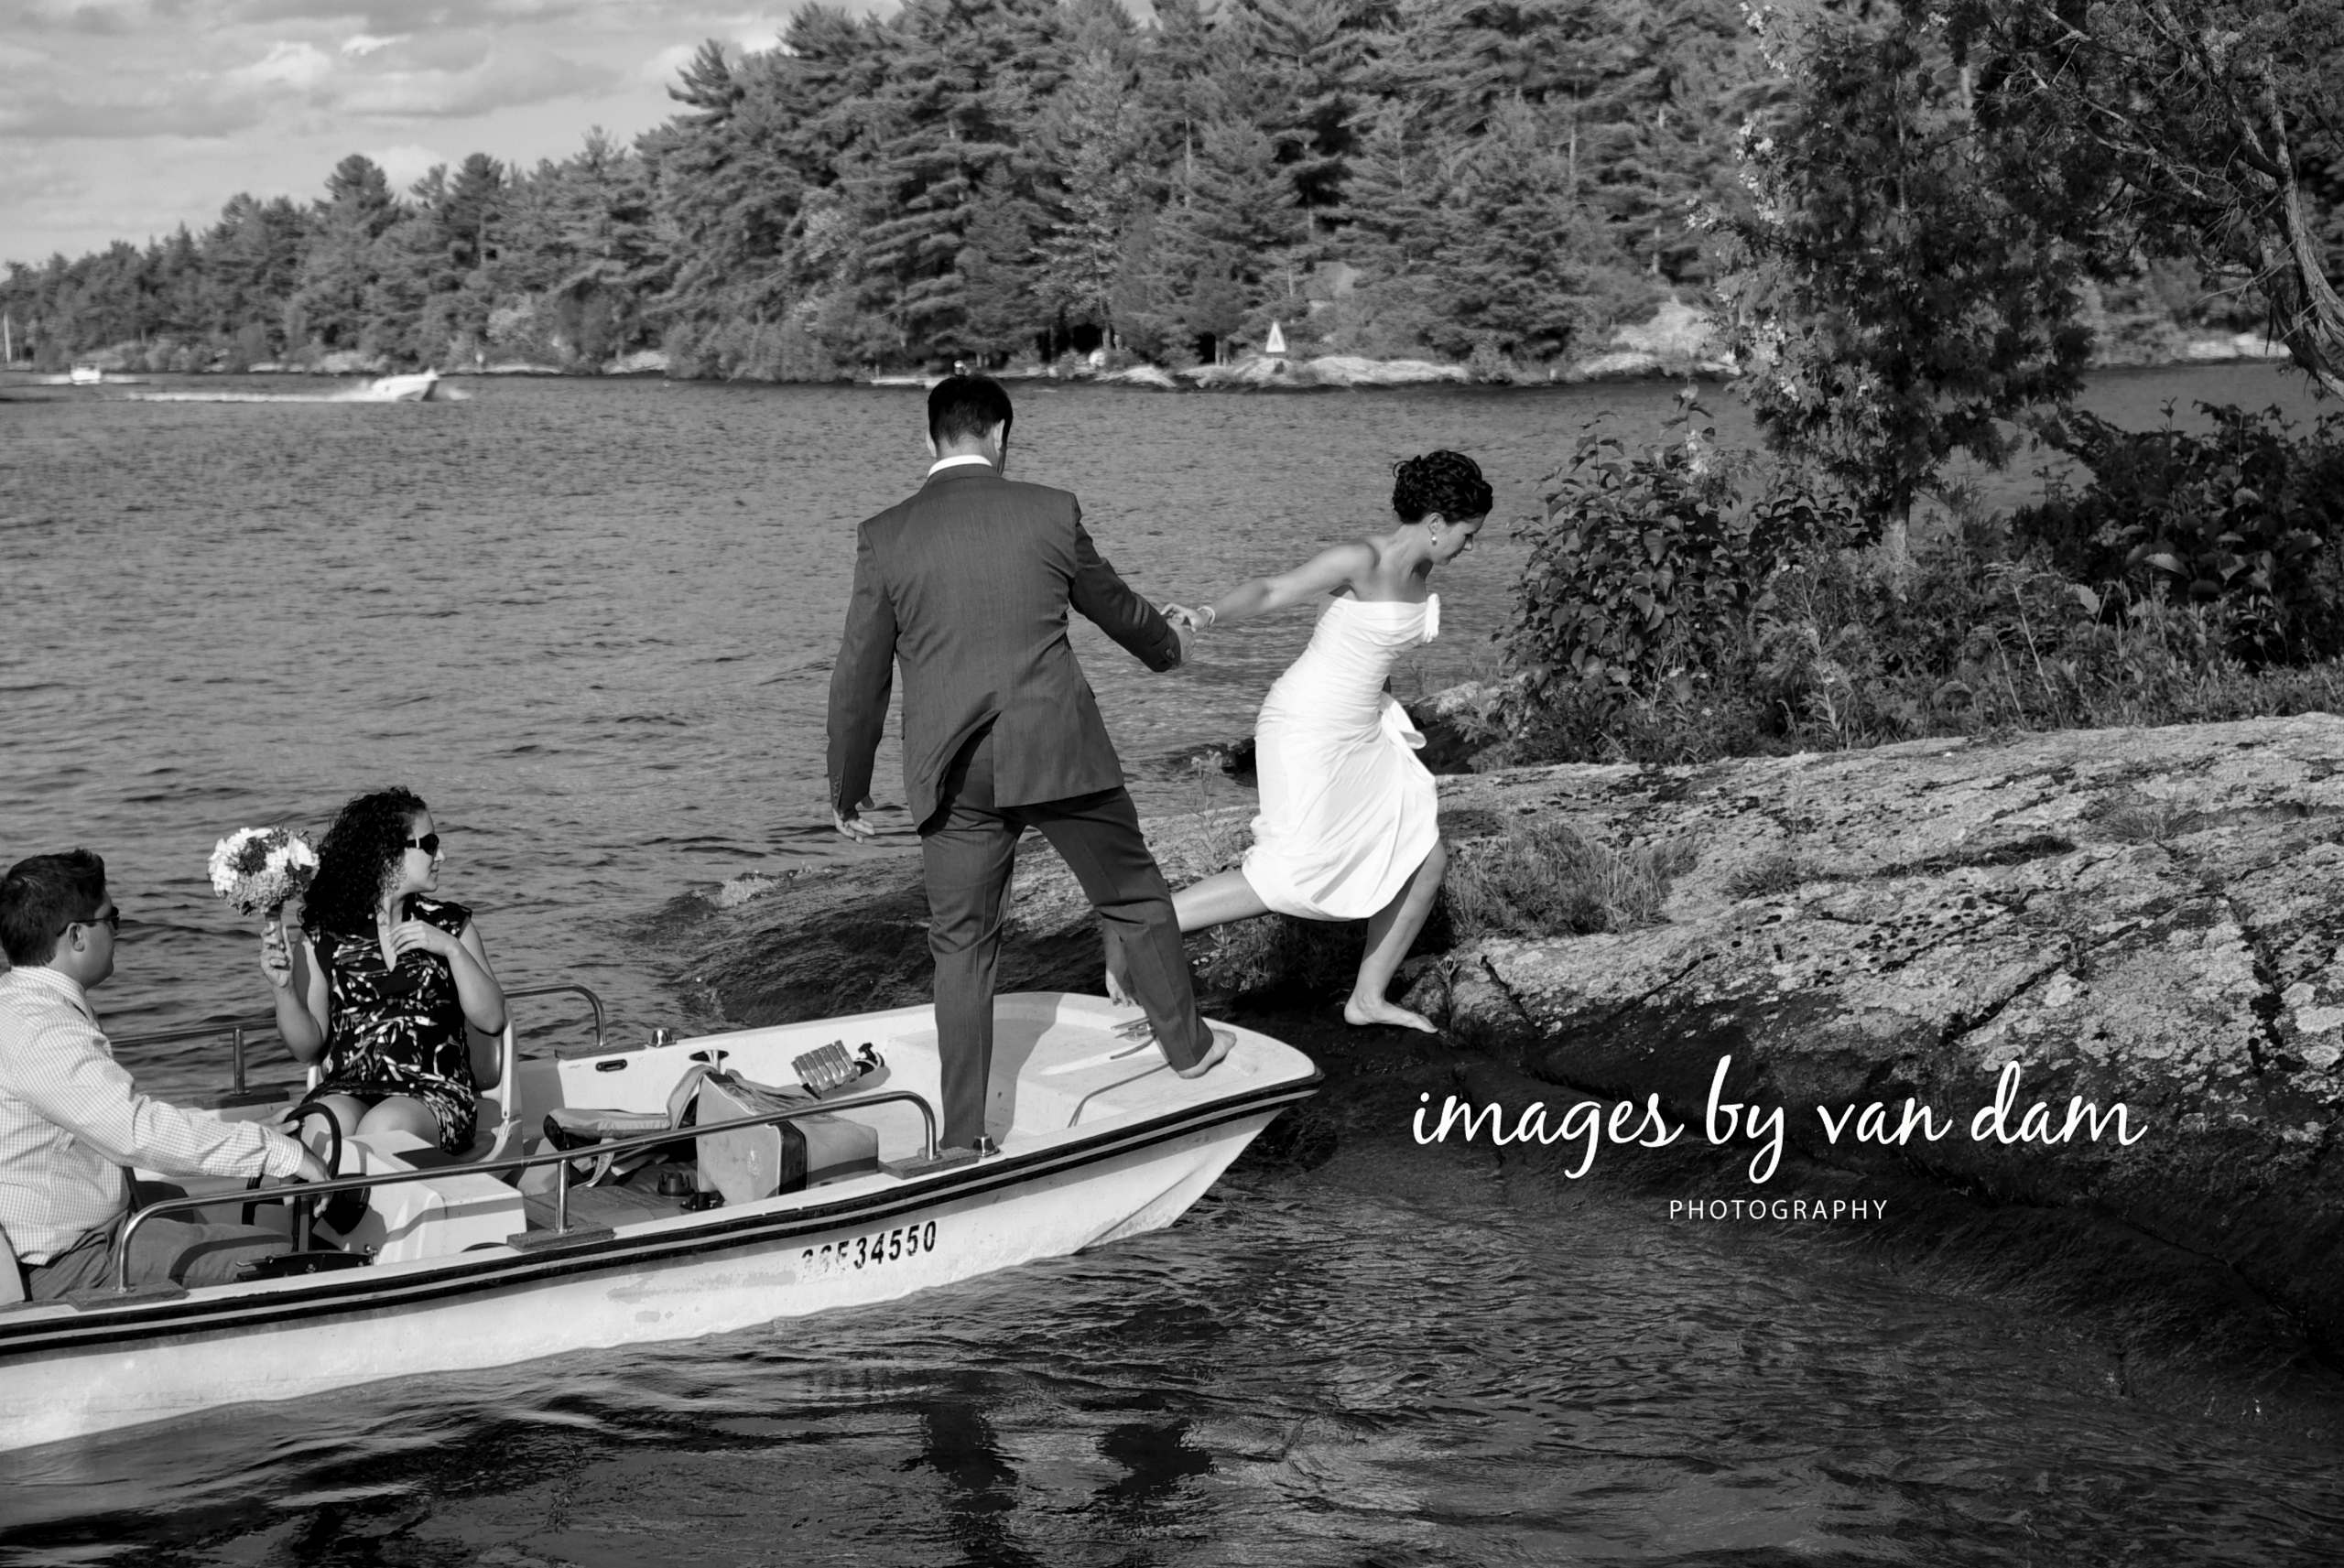 A bride hops off a motorboat onto an island for a wedding photography session